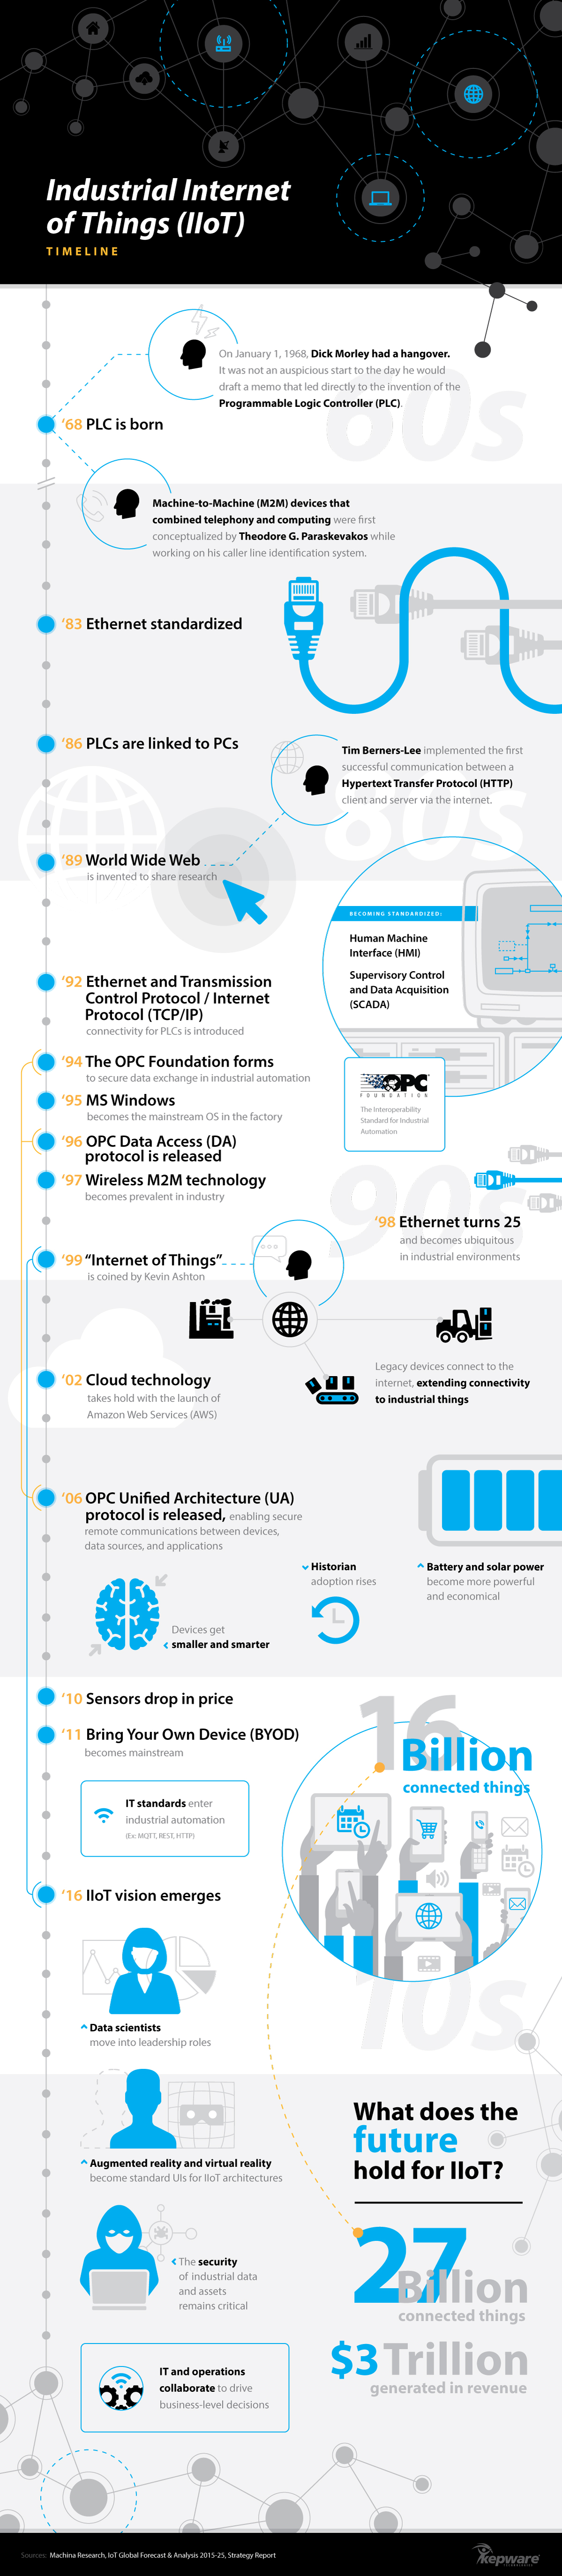 Industrial Internet of Things Timeline | Infographic ...